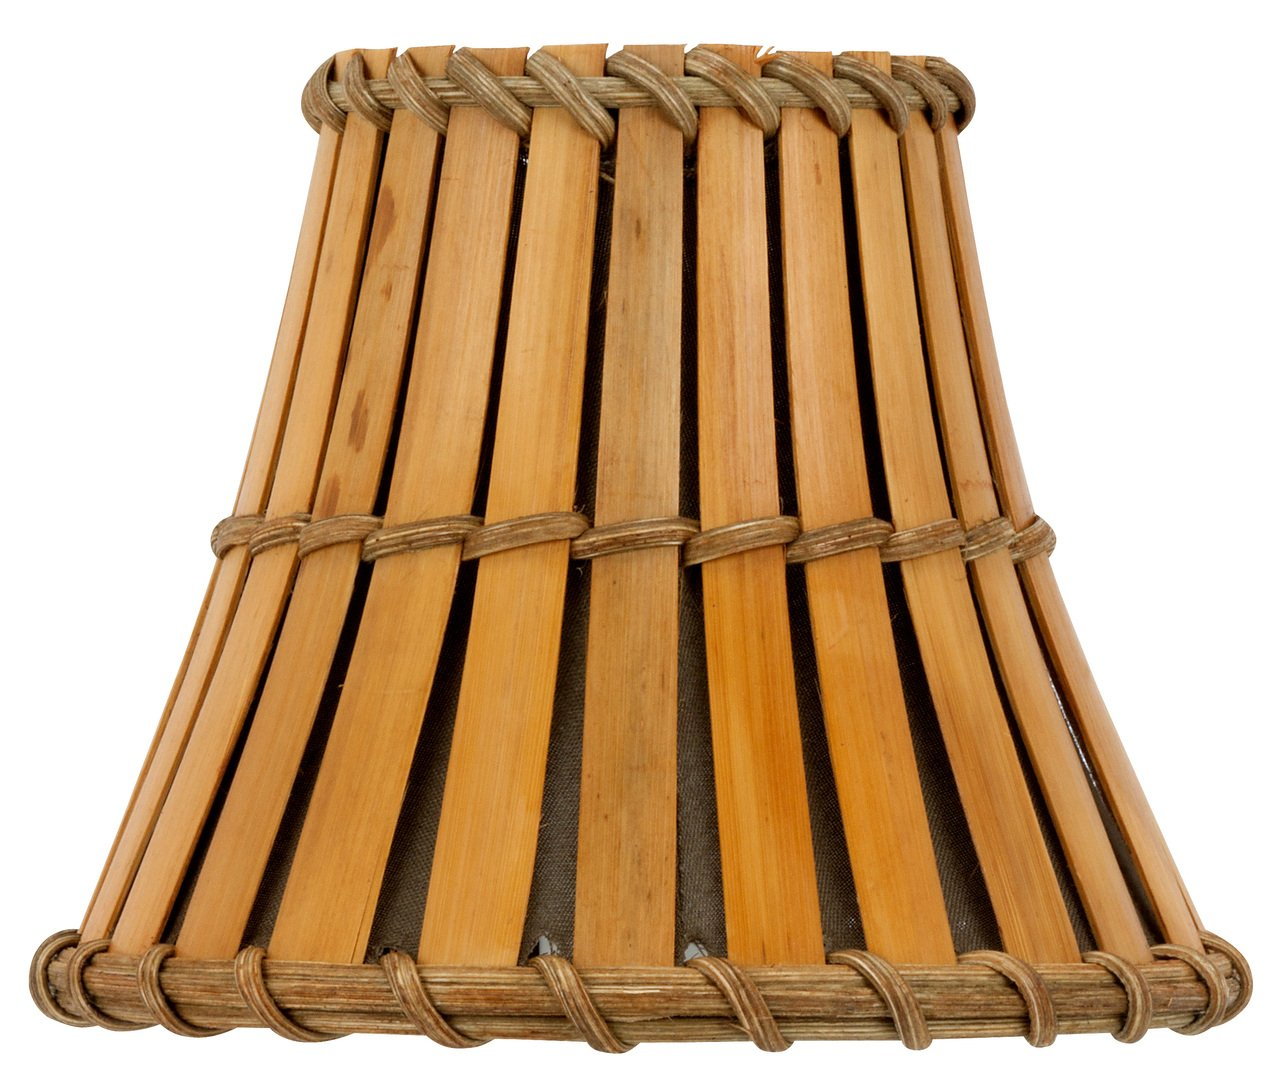 Upgradelights Bamboo Style 5 Inch Chandelier Lamp Shade 3x5x4.5